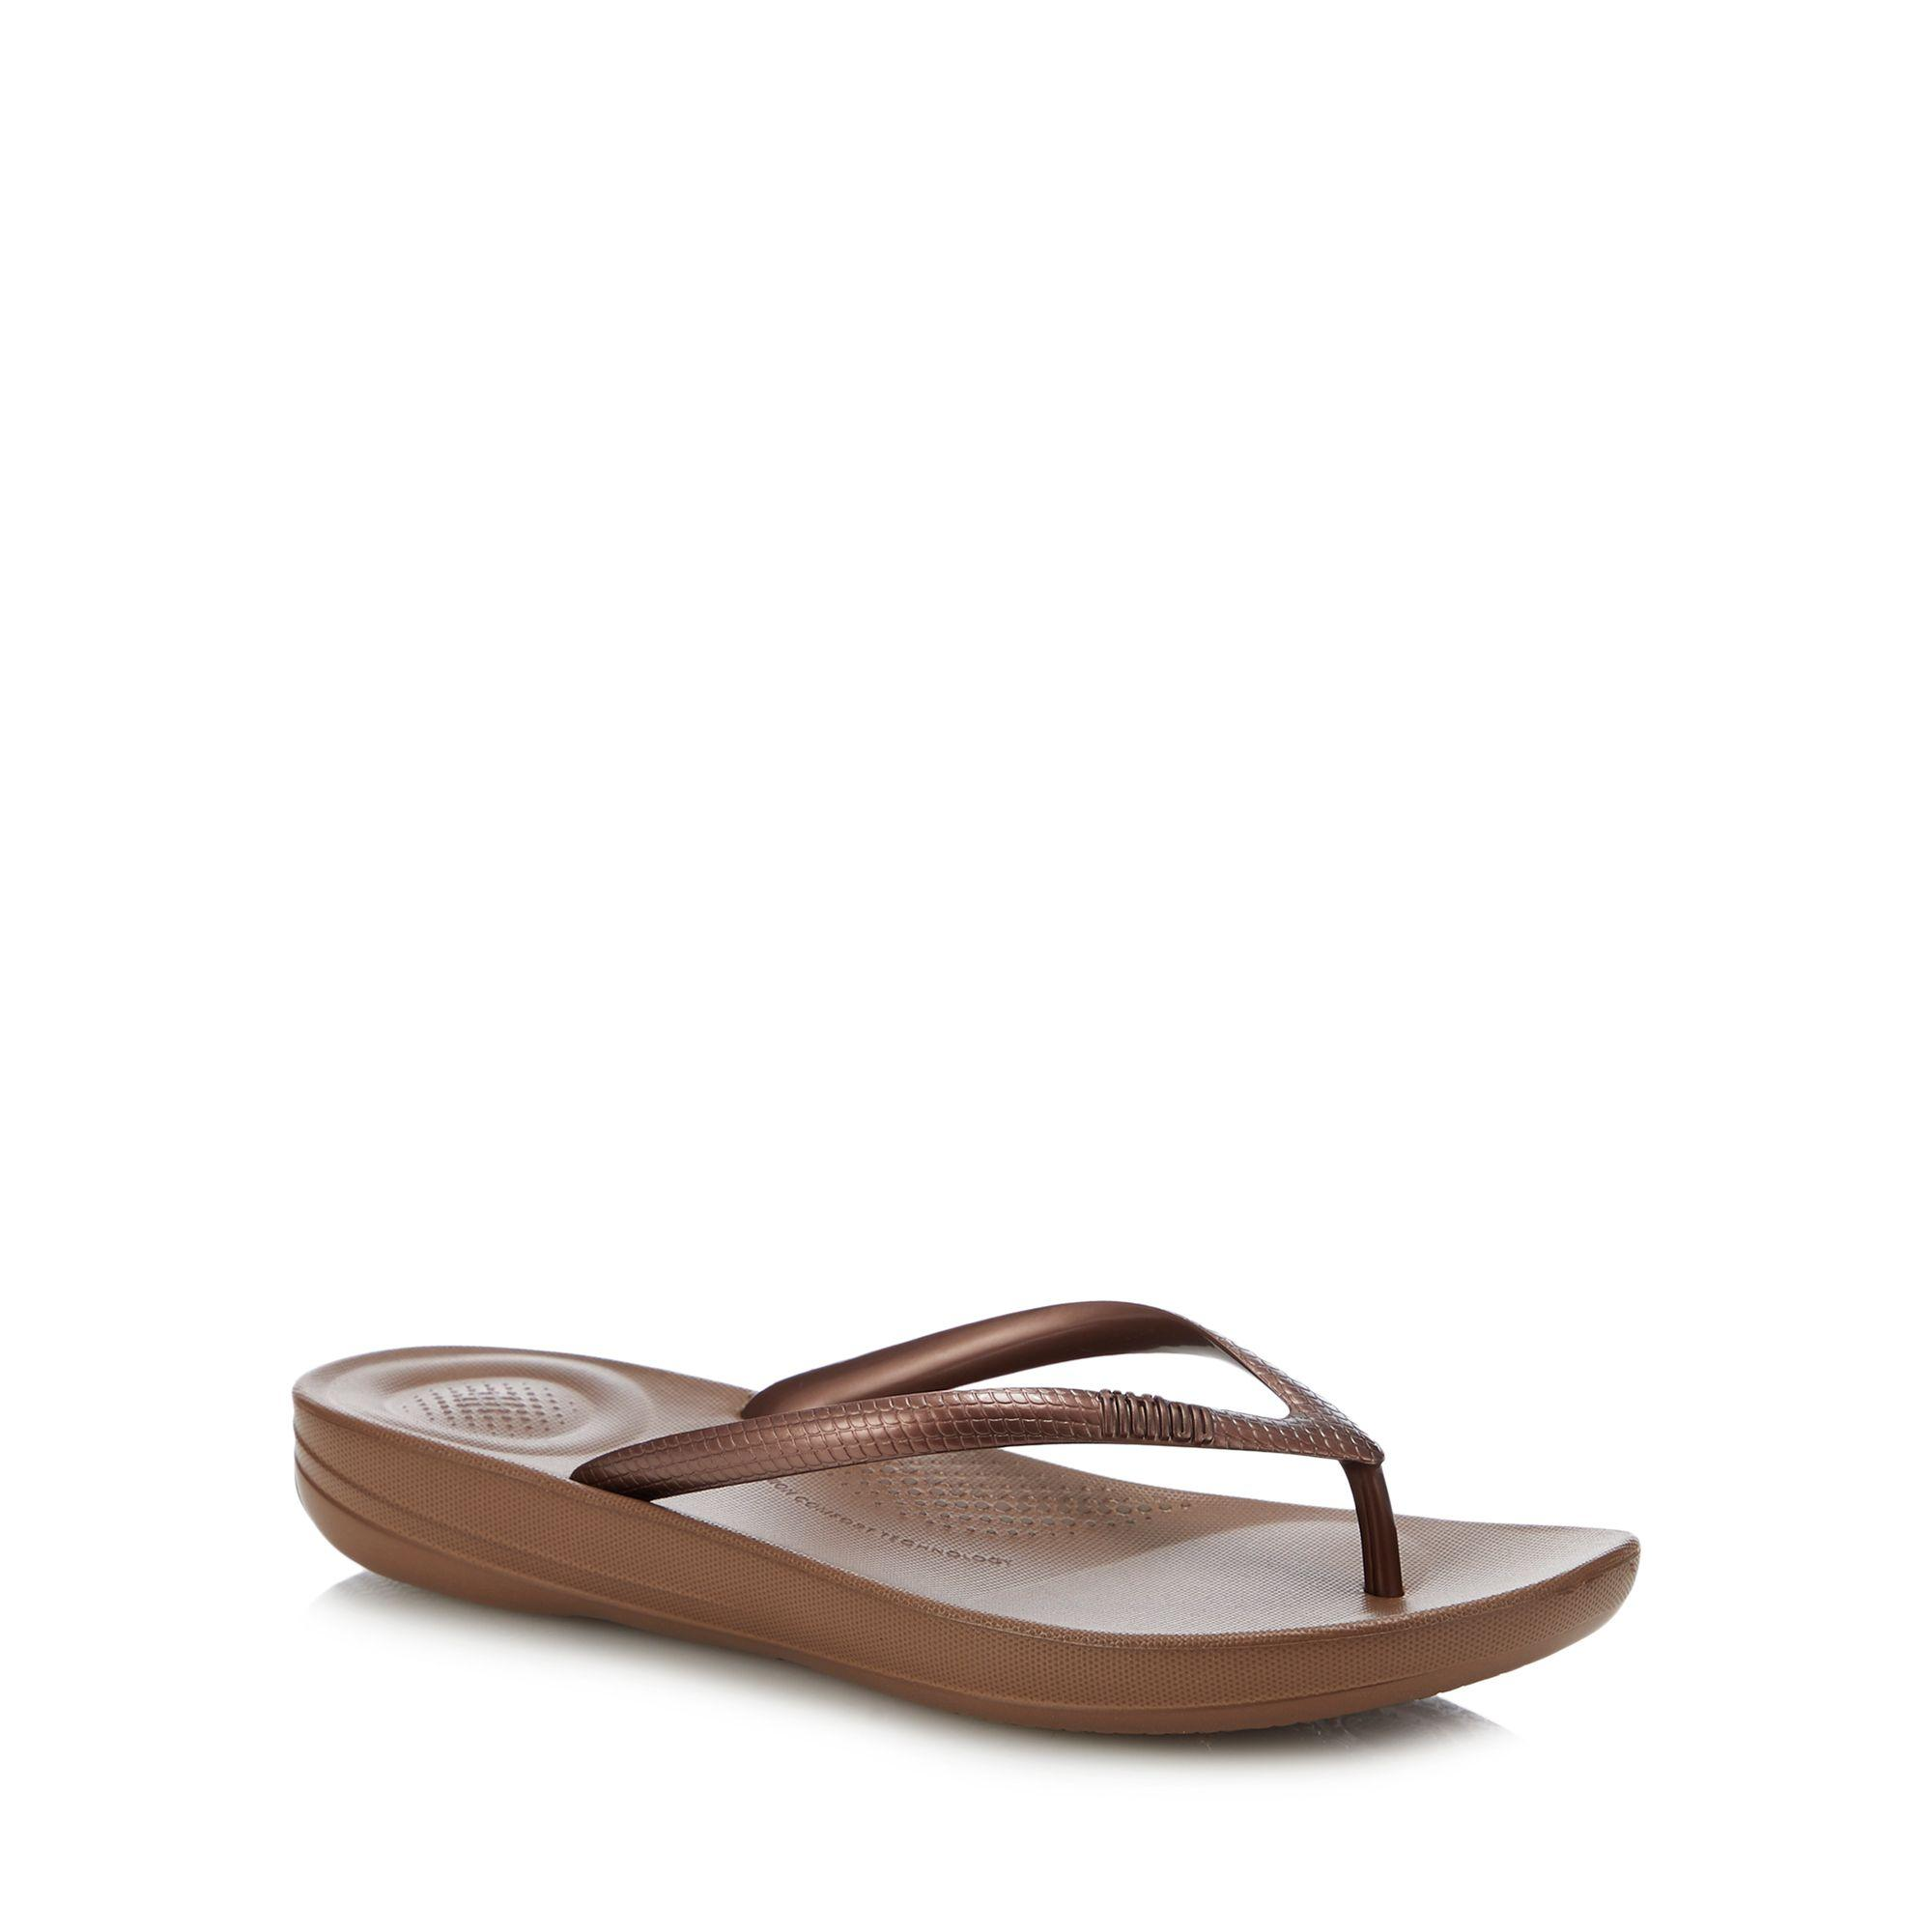 5f8f2dc7c886f Fitflop Bronze  iqushion  Flip Flops in Brown - Save 32% - Lyst